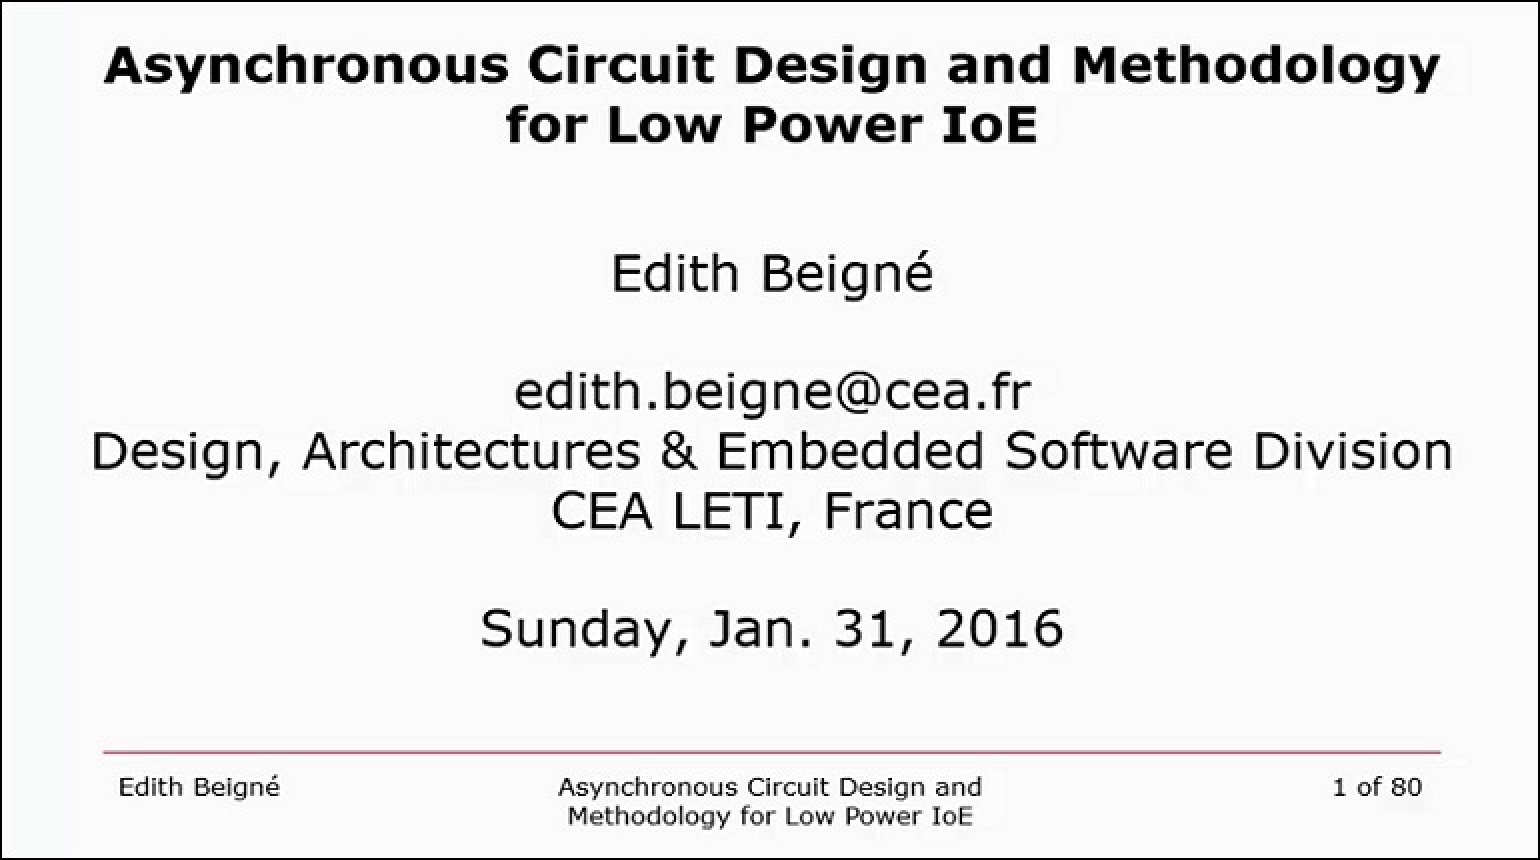 Asynchronous Circuit Design and Methodology for Low Power IoE Video